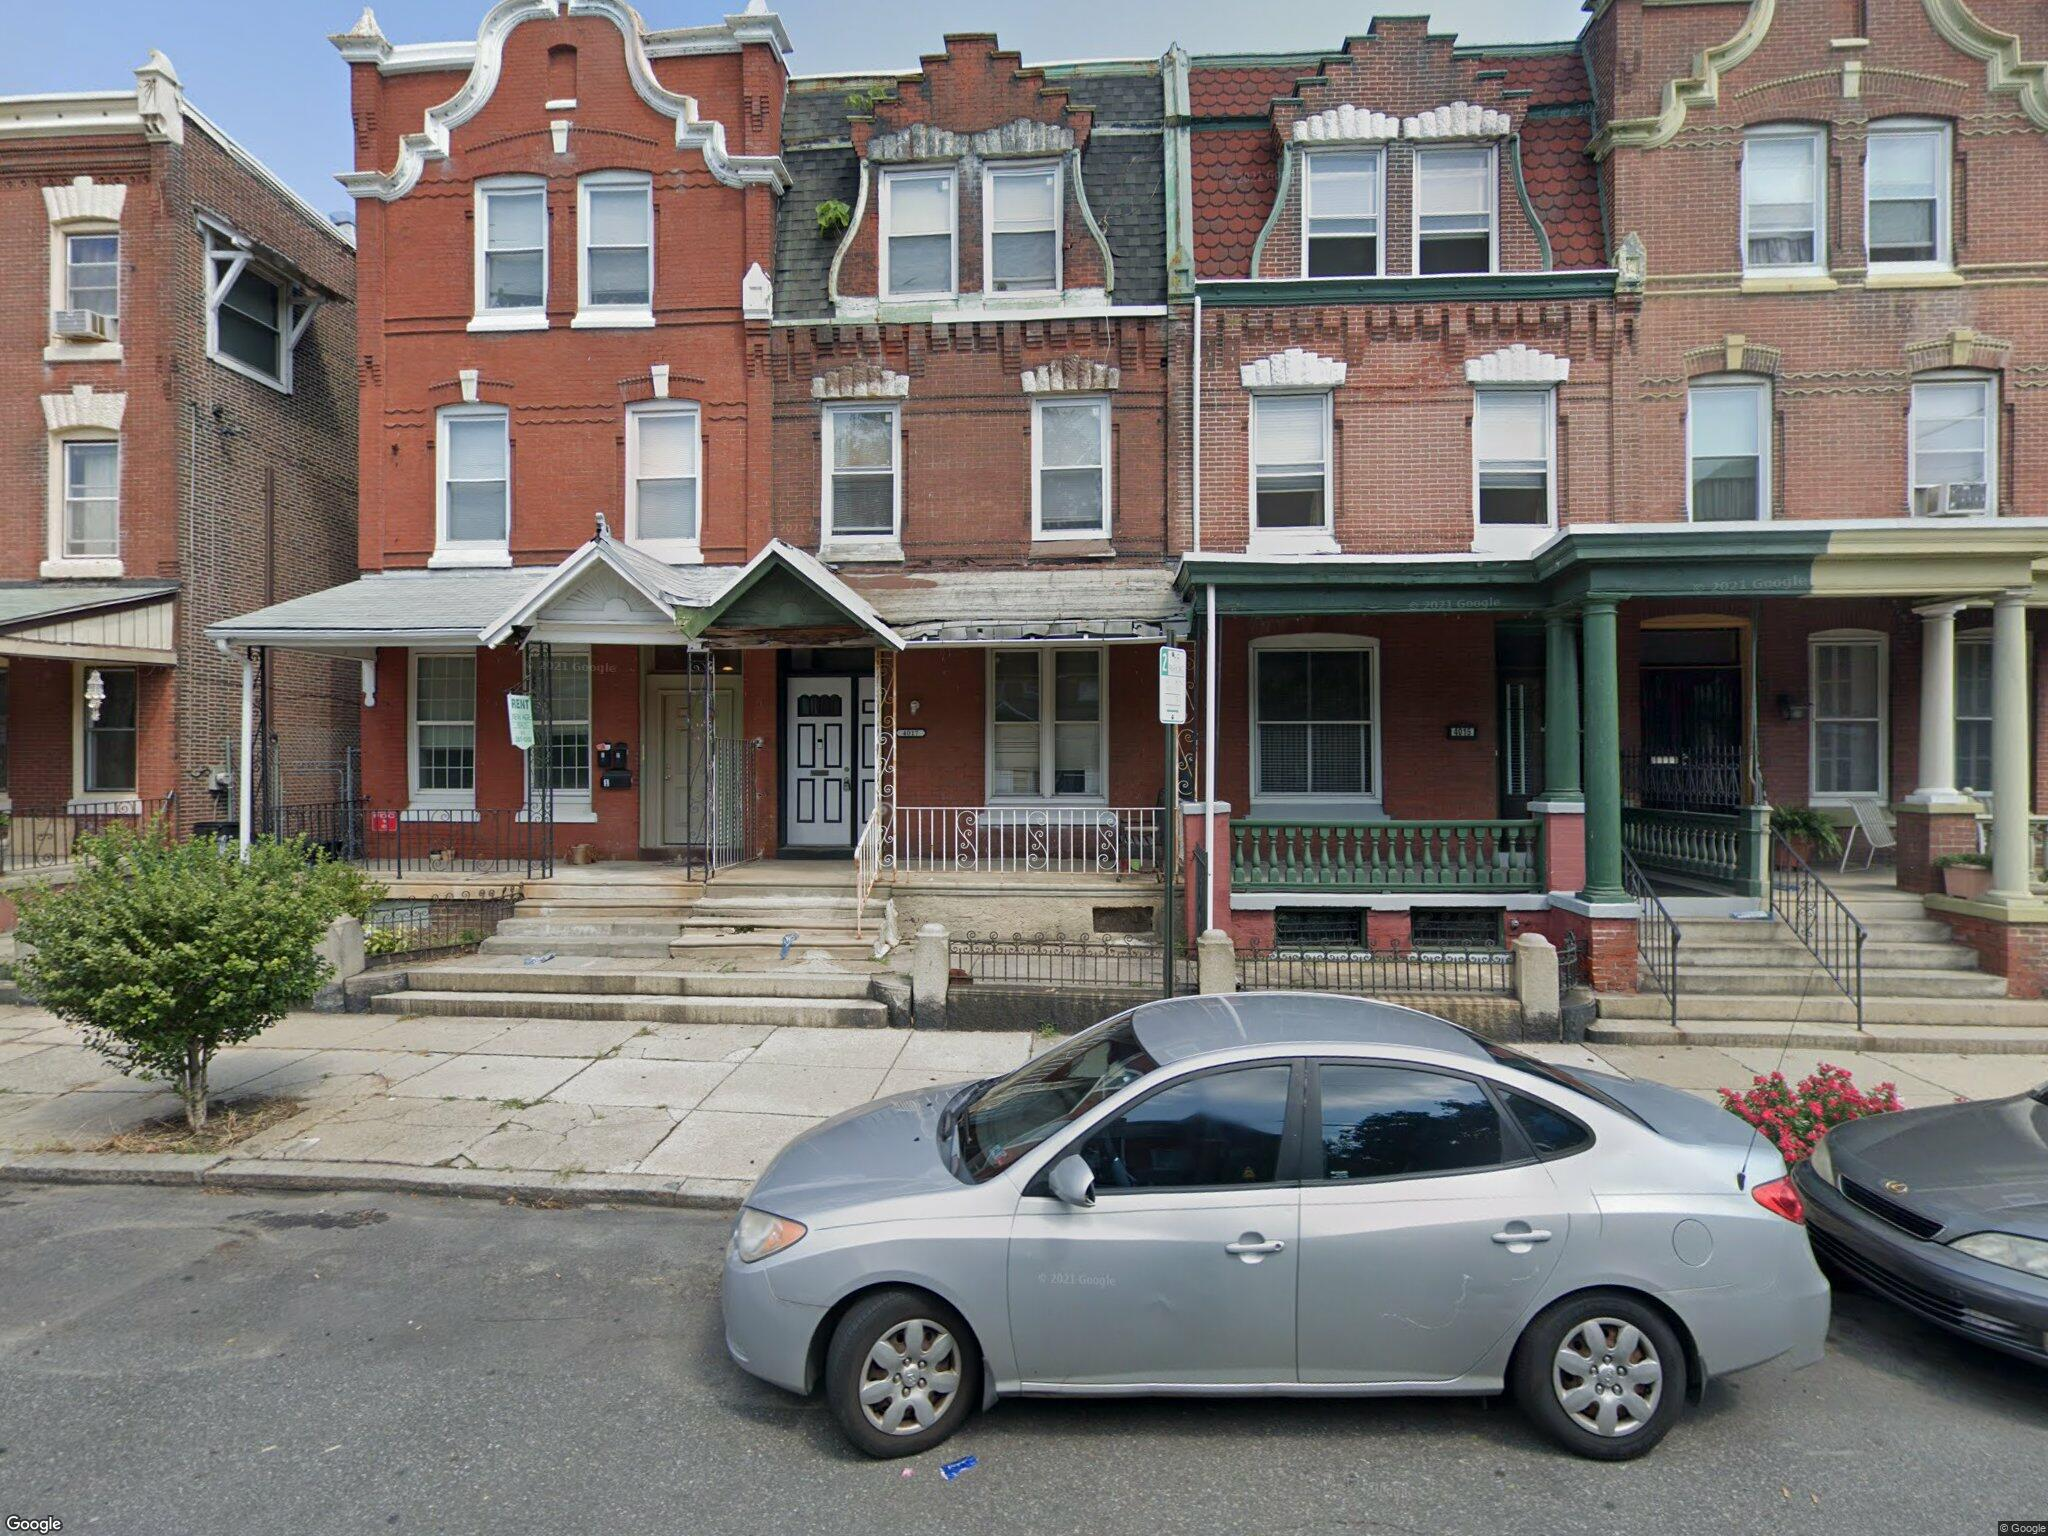 4017 Spring Garden St Philadelphia Pa 19104 Trulia Ultrasonic Parking Sonar By